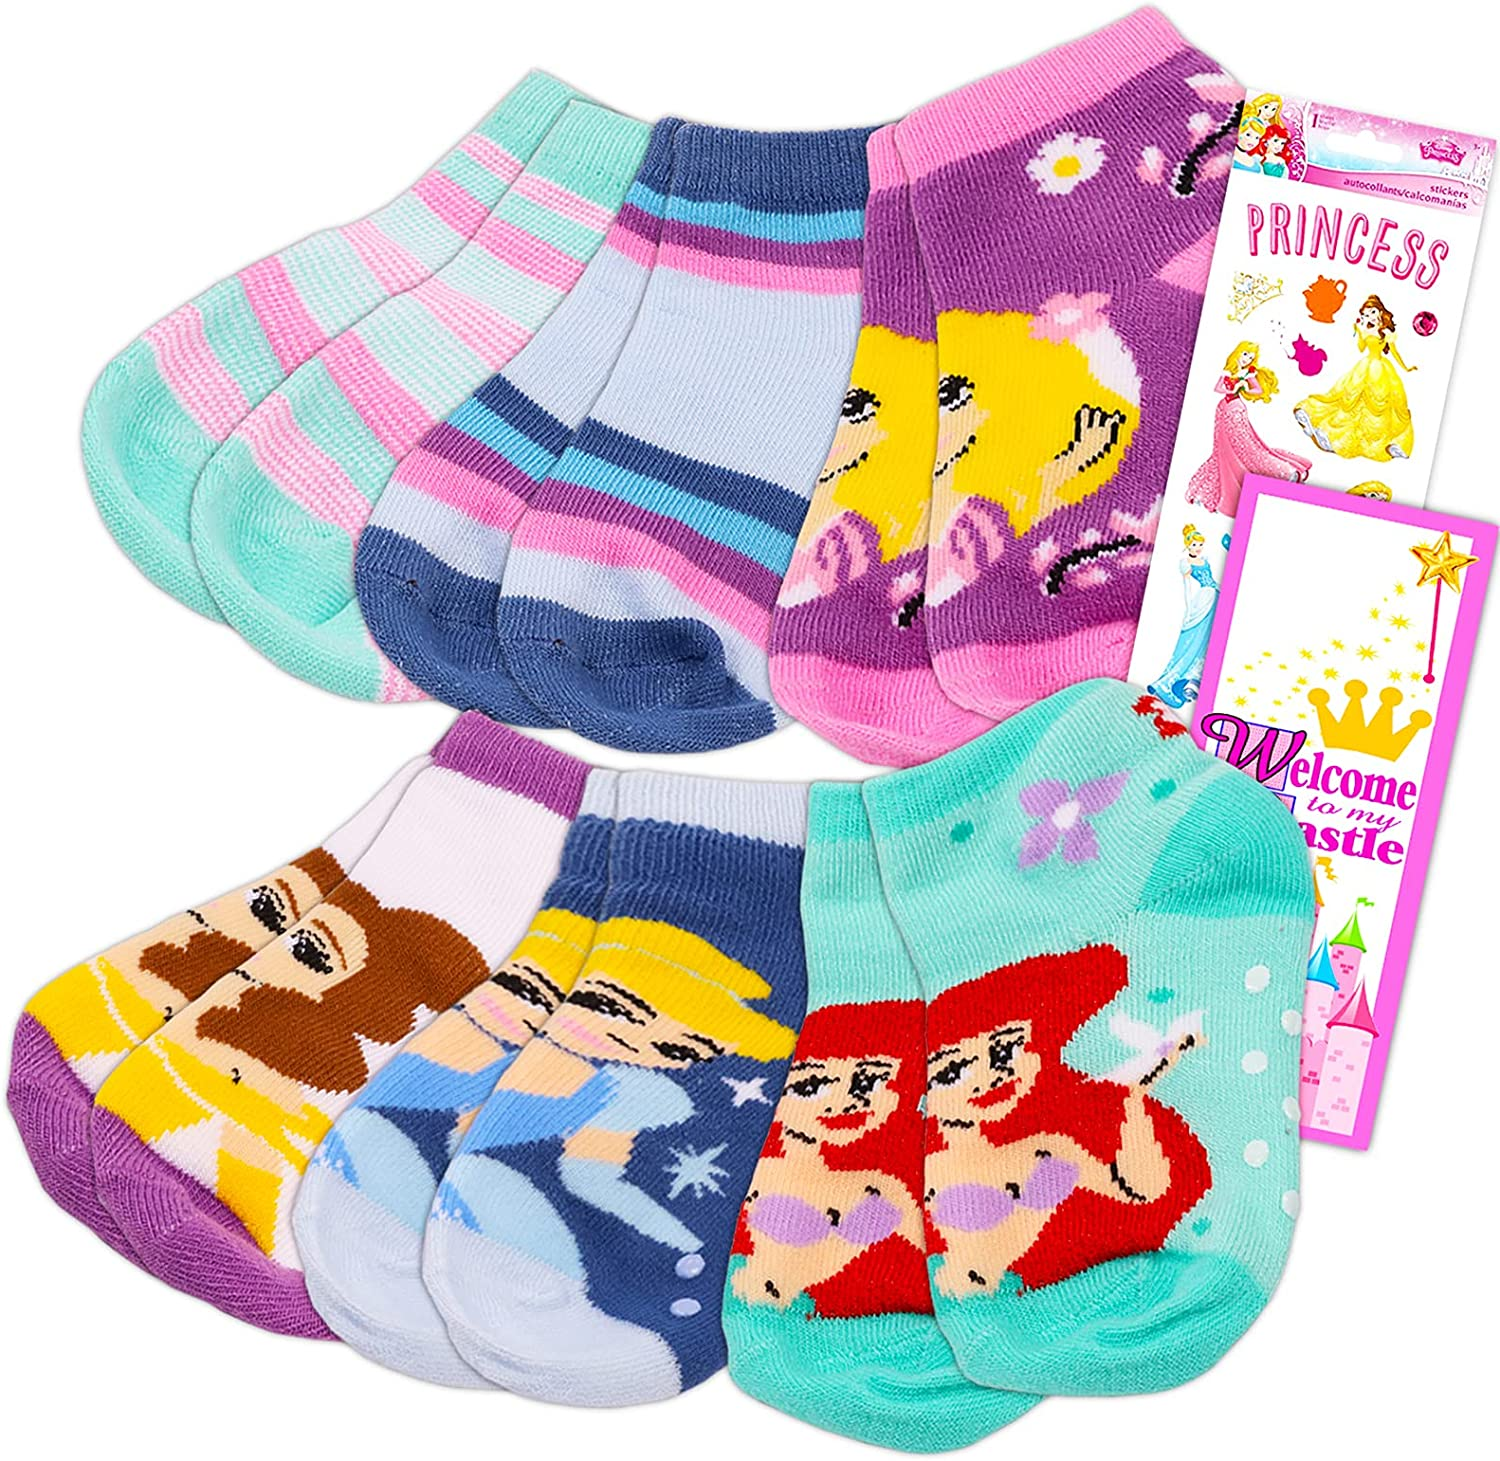 Disney Princess Socks Bundle (6 Pairs) for Toddlers Ages 2 to 4 | for Toddler, Little Girl, Big Girl - Value Pack Includes Princess Socks, Sticker Pack, and More